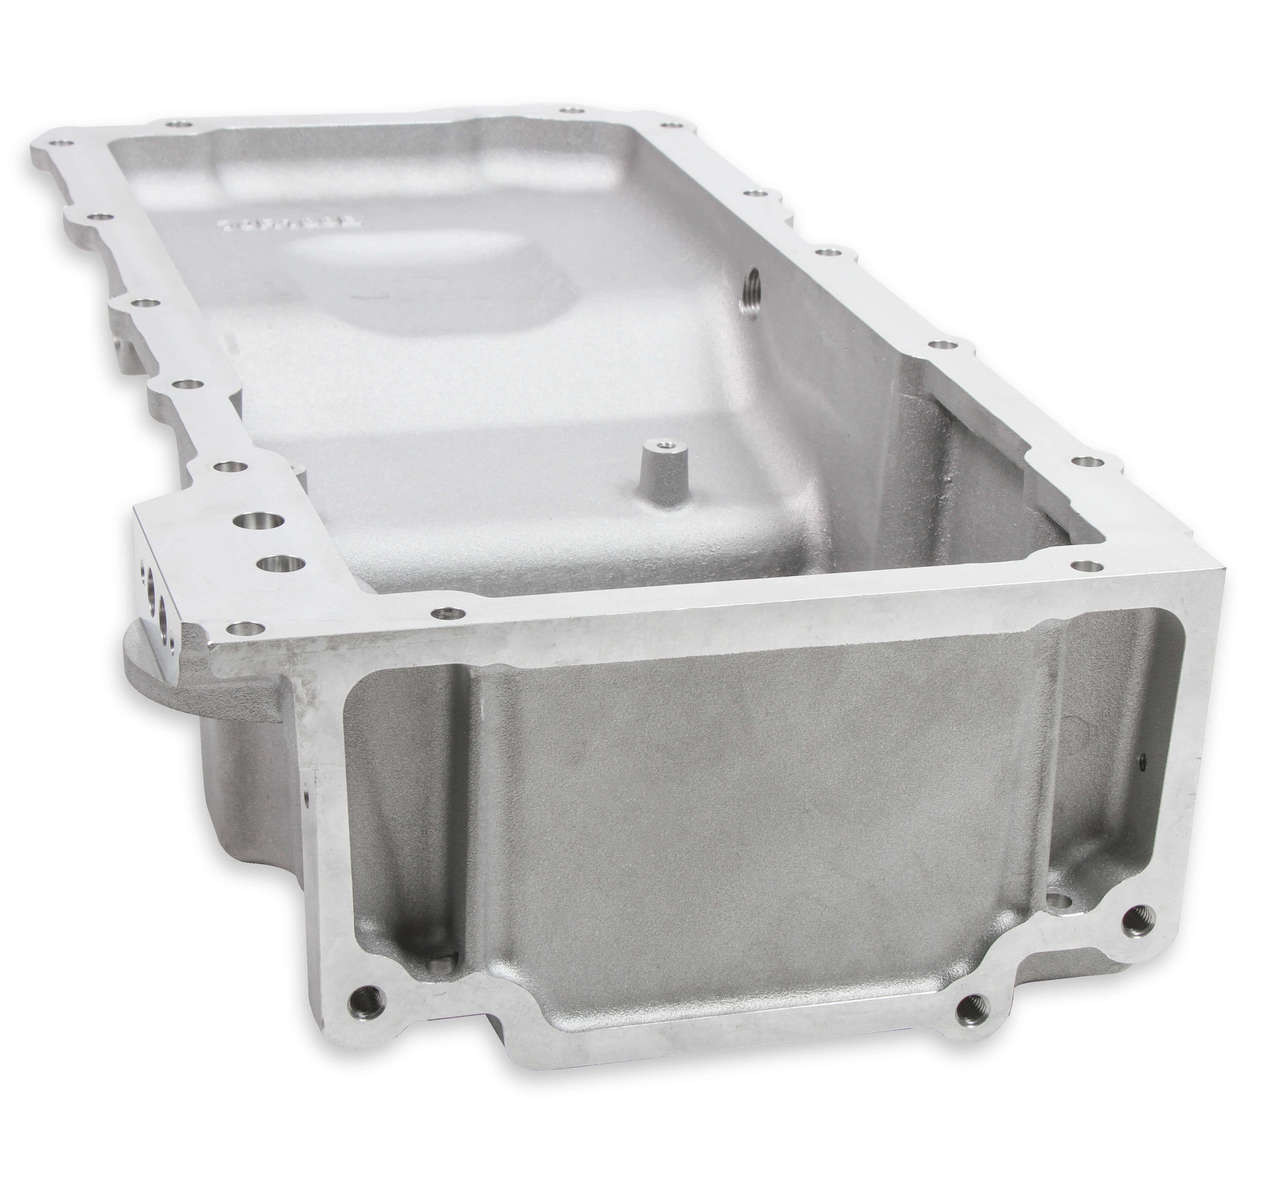 Holley 302-3 LS Engine Swap Oil Pan - Free LSX T-shirt with purchase!